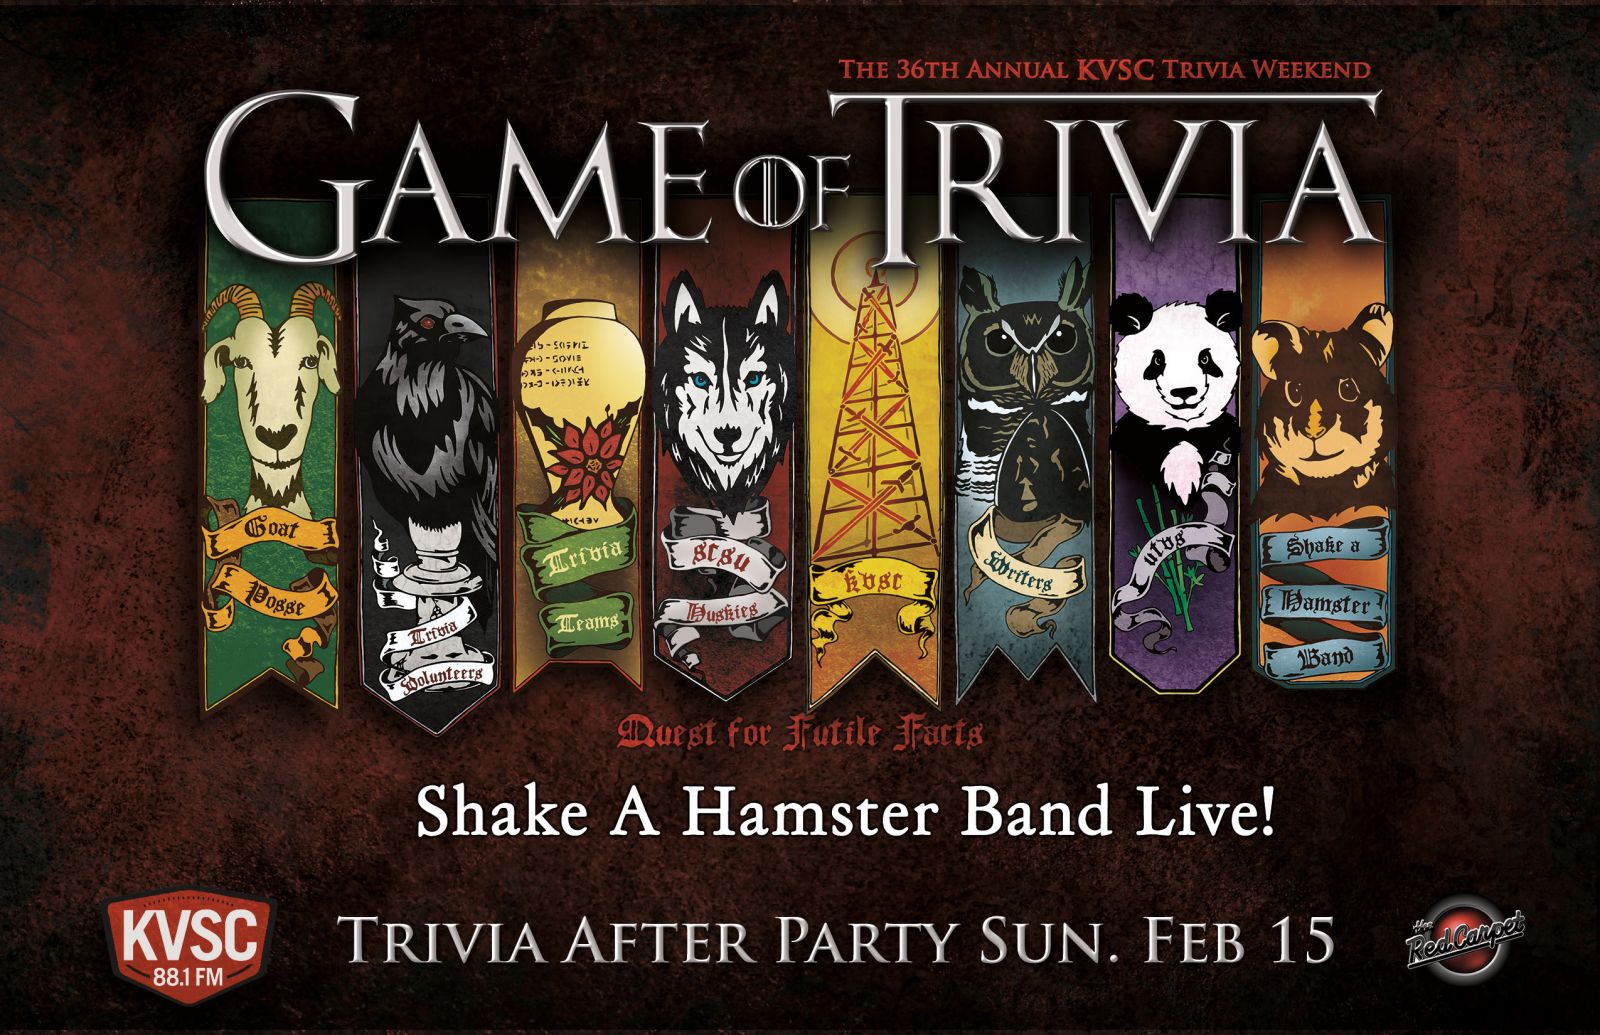 Behind the Scenes of KVSC'S 36th Annual Trivia Weekend: Game of Trivia, Quest for Futile Facts PART 2